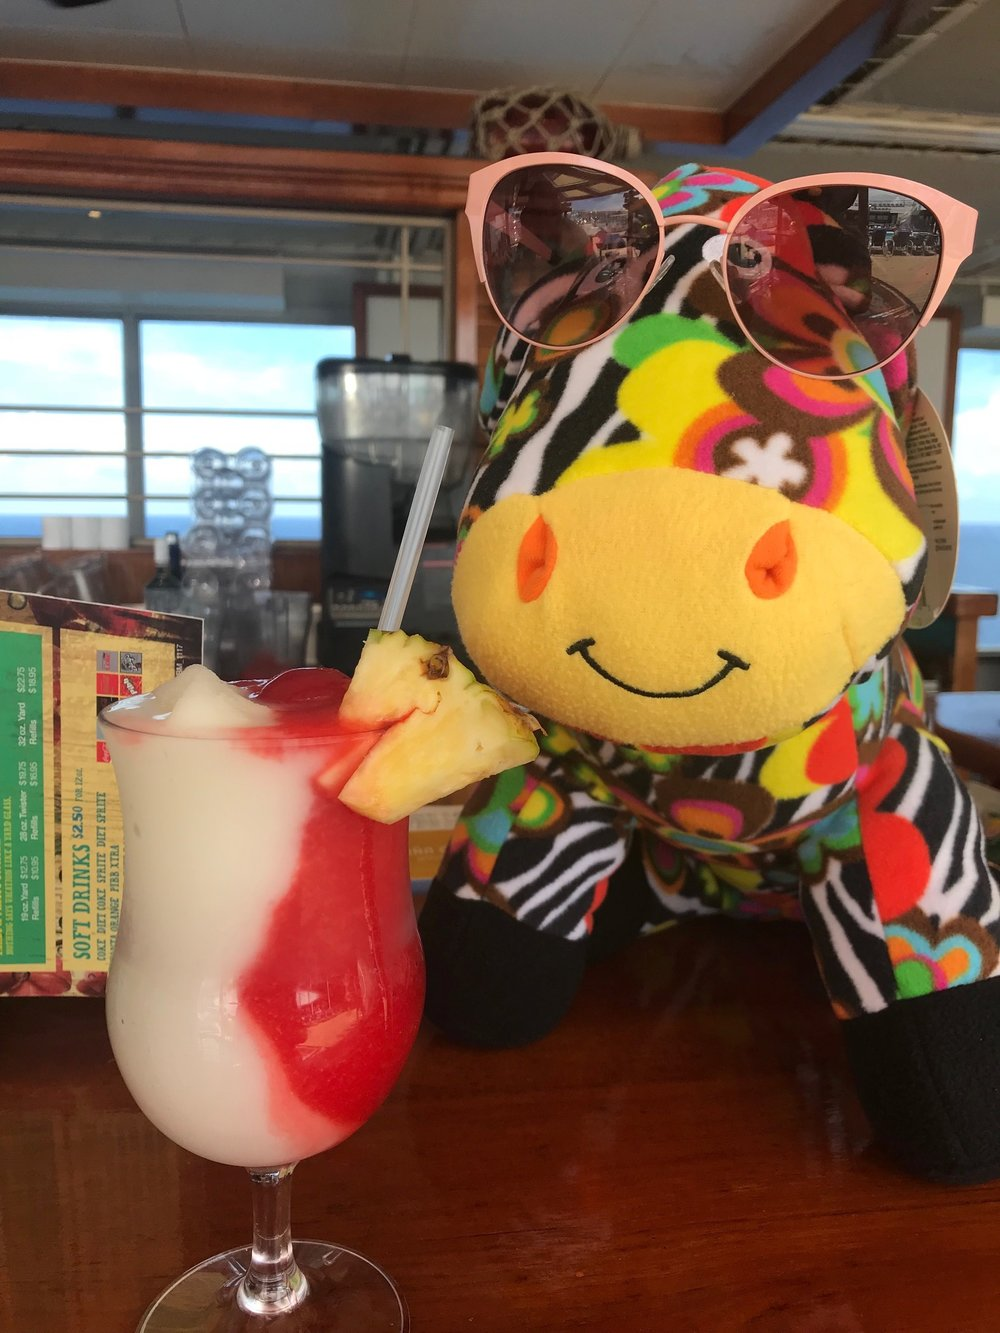 Zelda the zebra was our zany hostess for 2018 and has big plans for the 2019 cruise!